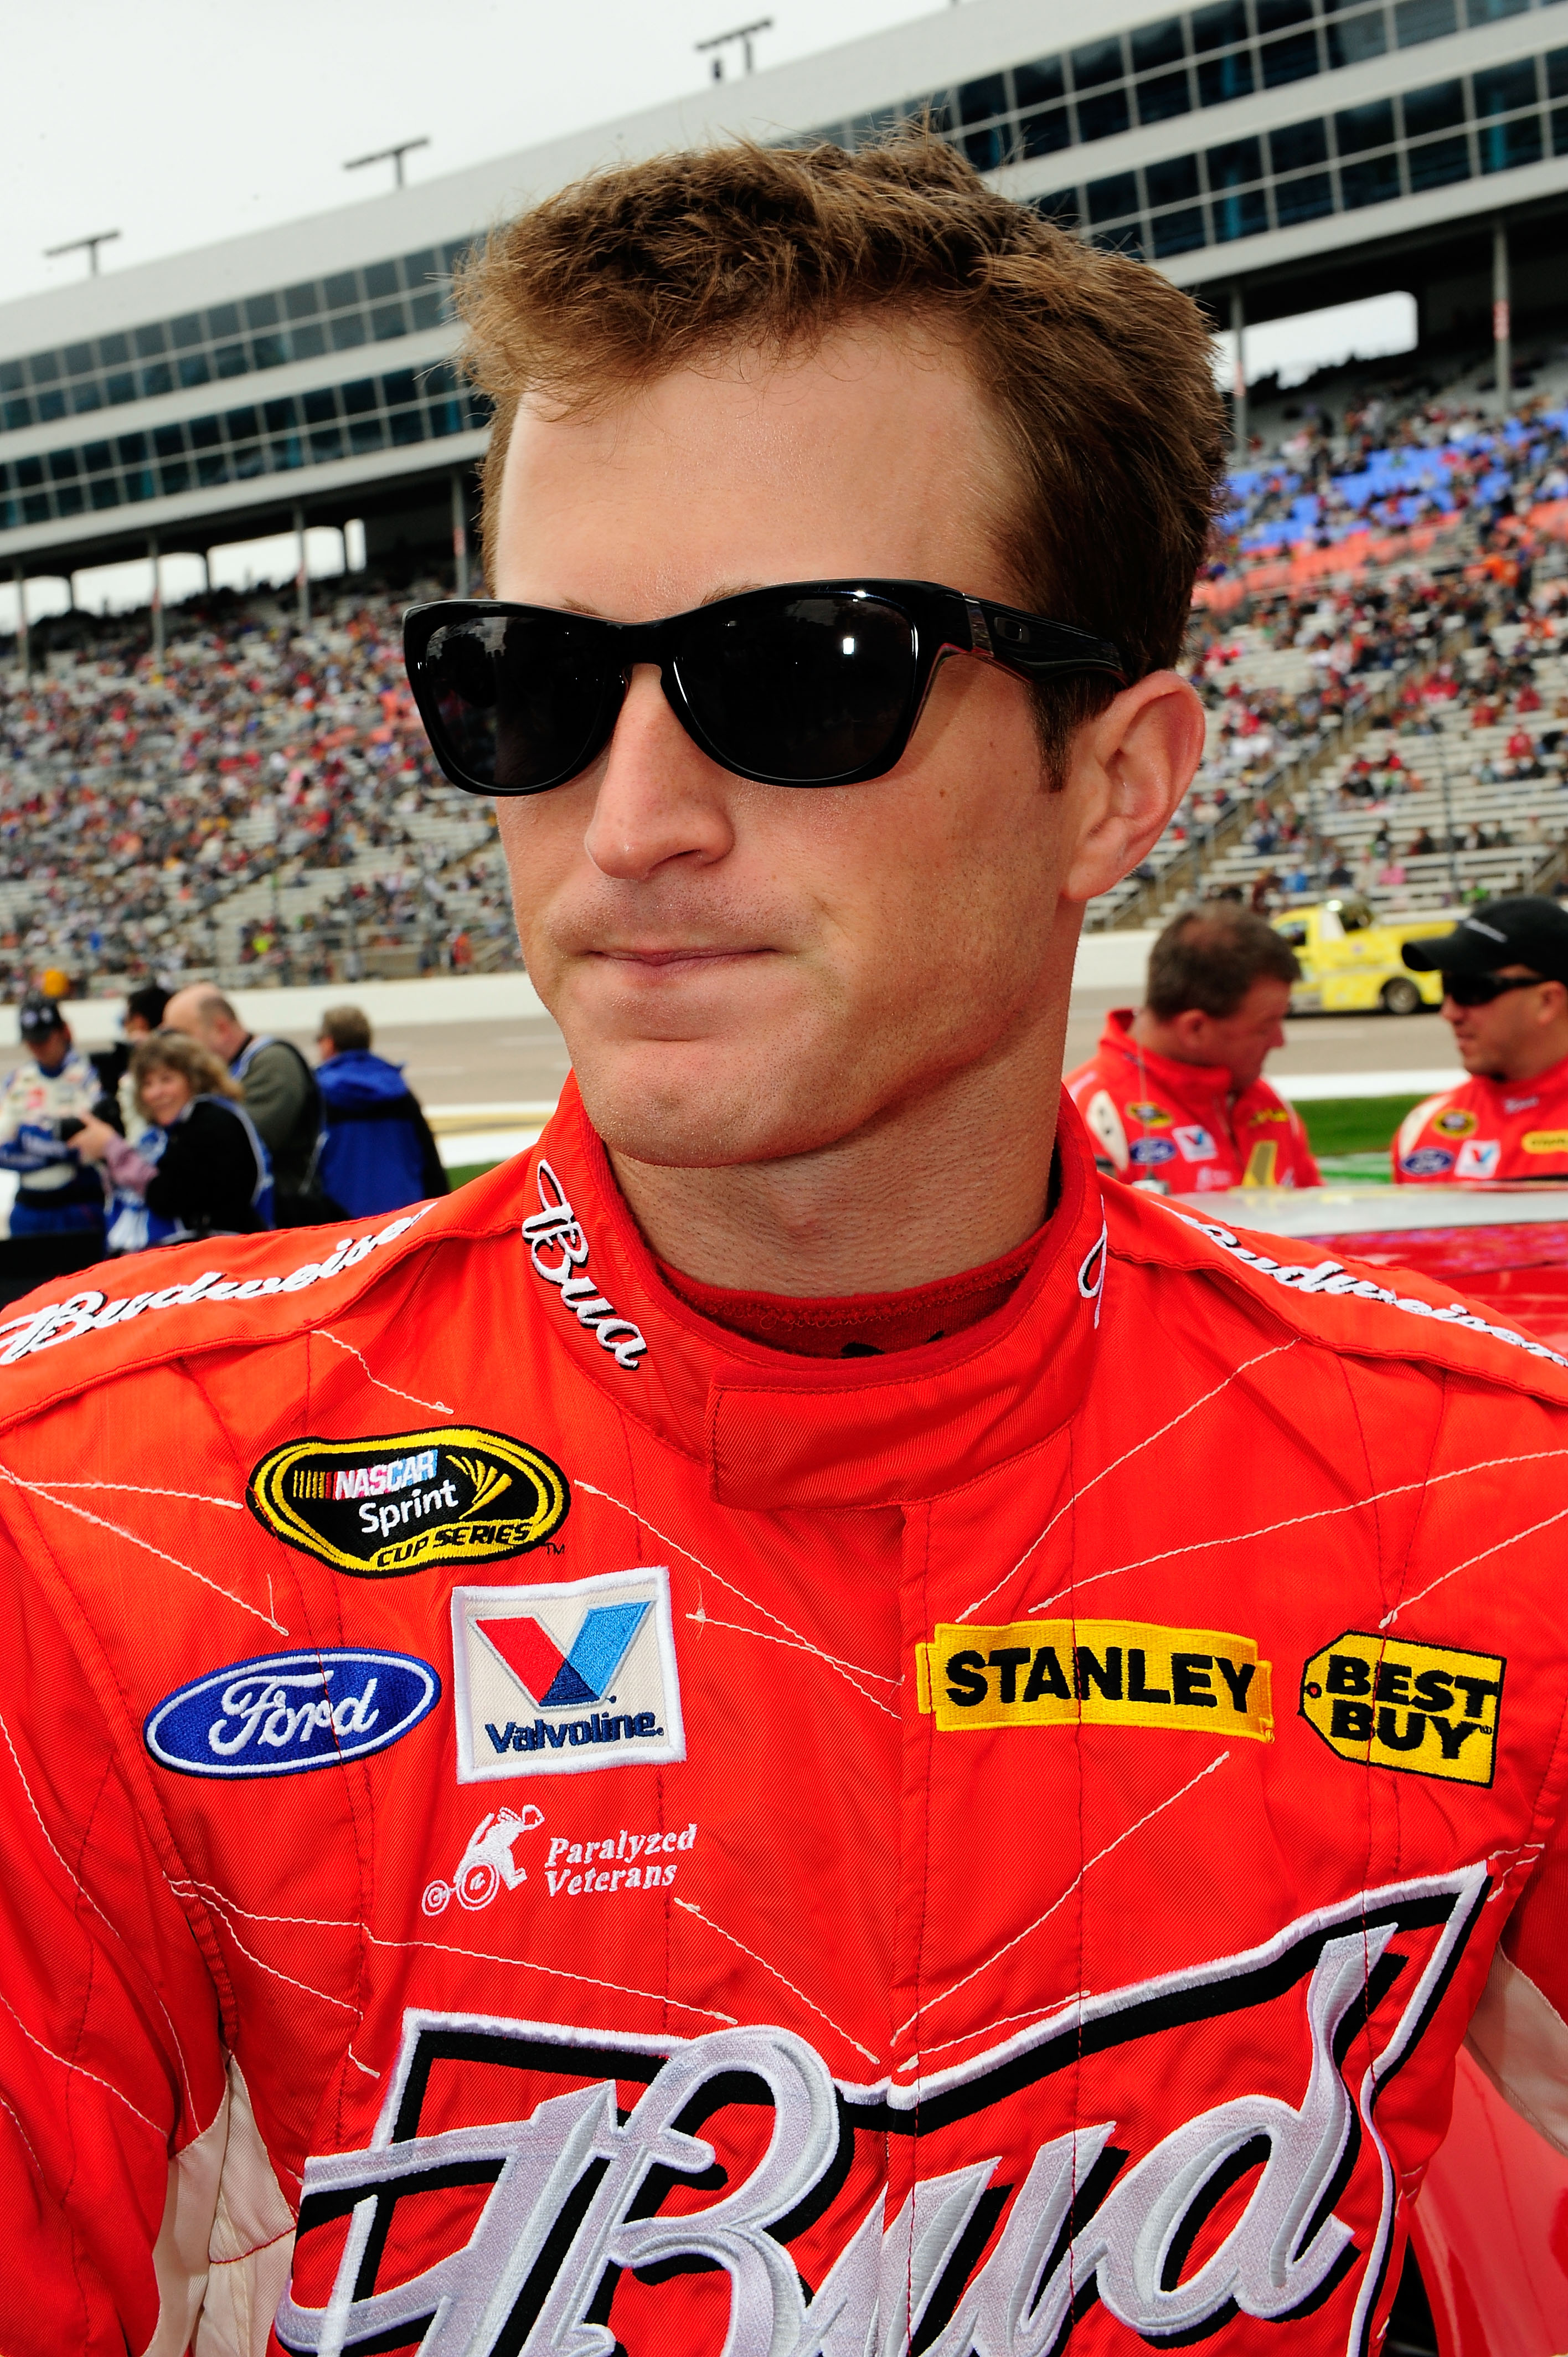 FORT WORTH, TX - APRIL 19:  Kasey Kahne, driver of the #9 Budweiser Ford, looks on prior to the start of the NASCAR Sprint Cup Series Samsung Mobile 500 at Texas Motor Speedway on April 19, 2010 in Fort Worth, Texas.  (Photo by Rusty Jarrett/Getty Images